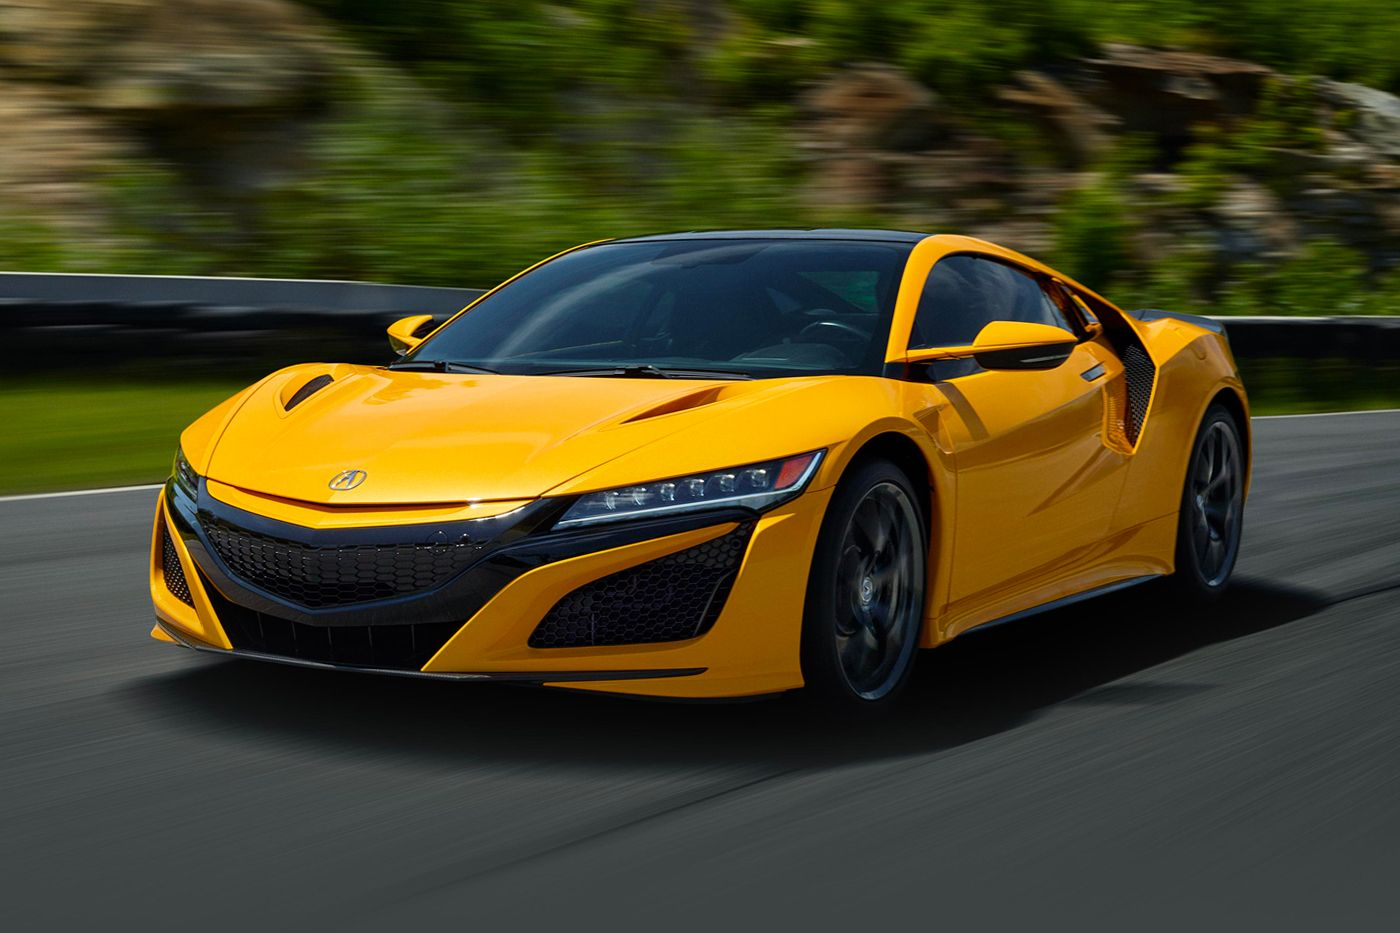 The 2020 Acura NSX Now Comes in Heritage Indy Yellow Pearl